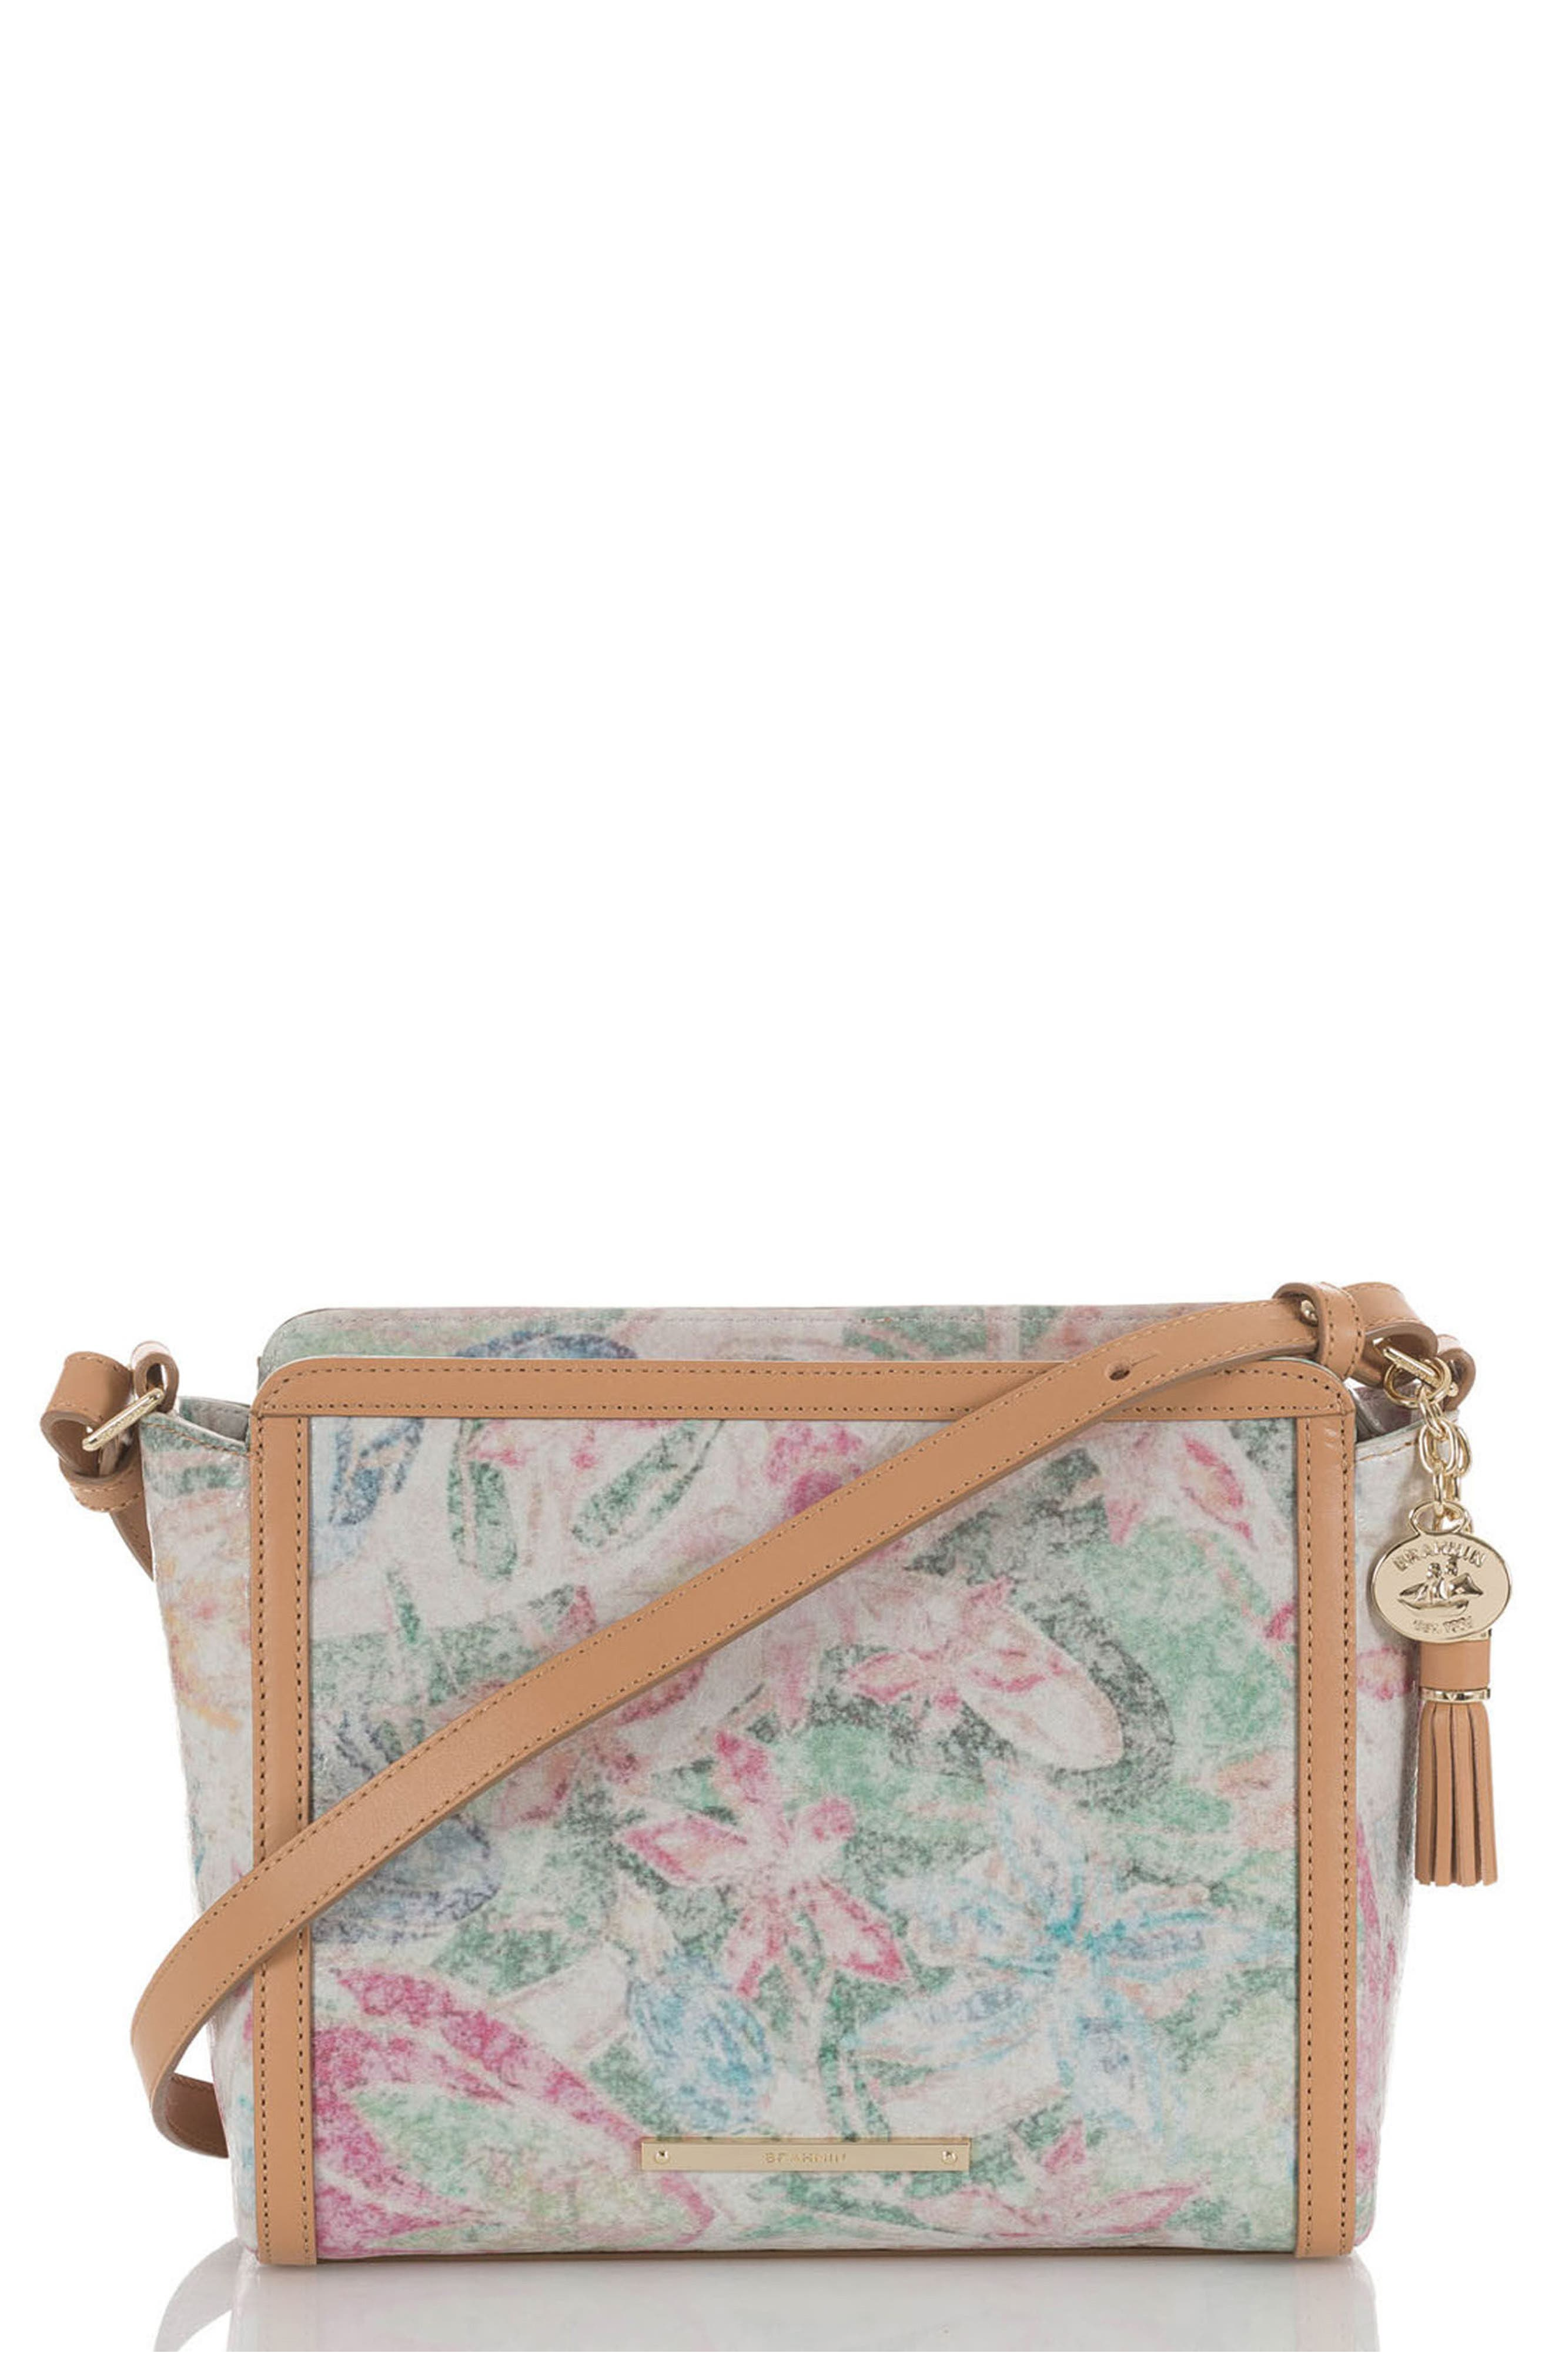 Floral Carrie Leather Crossbody Bag,                             Main thumbnail 1, color,                             250